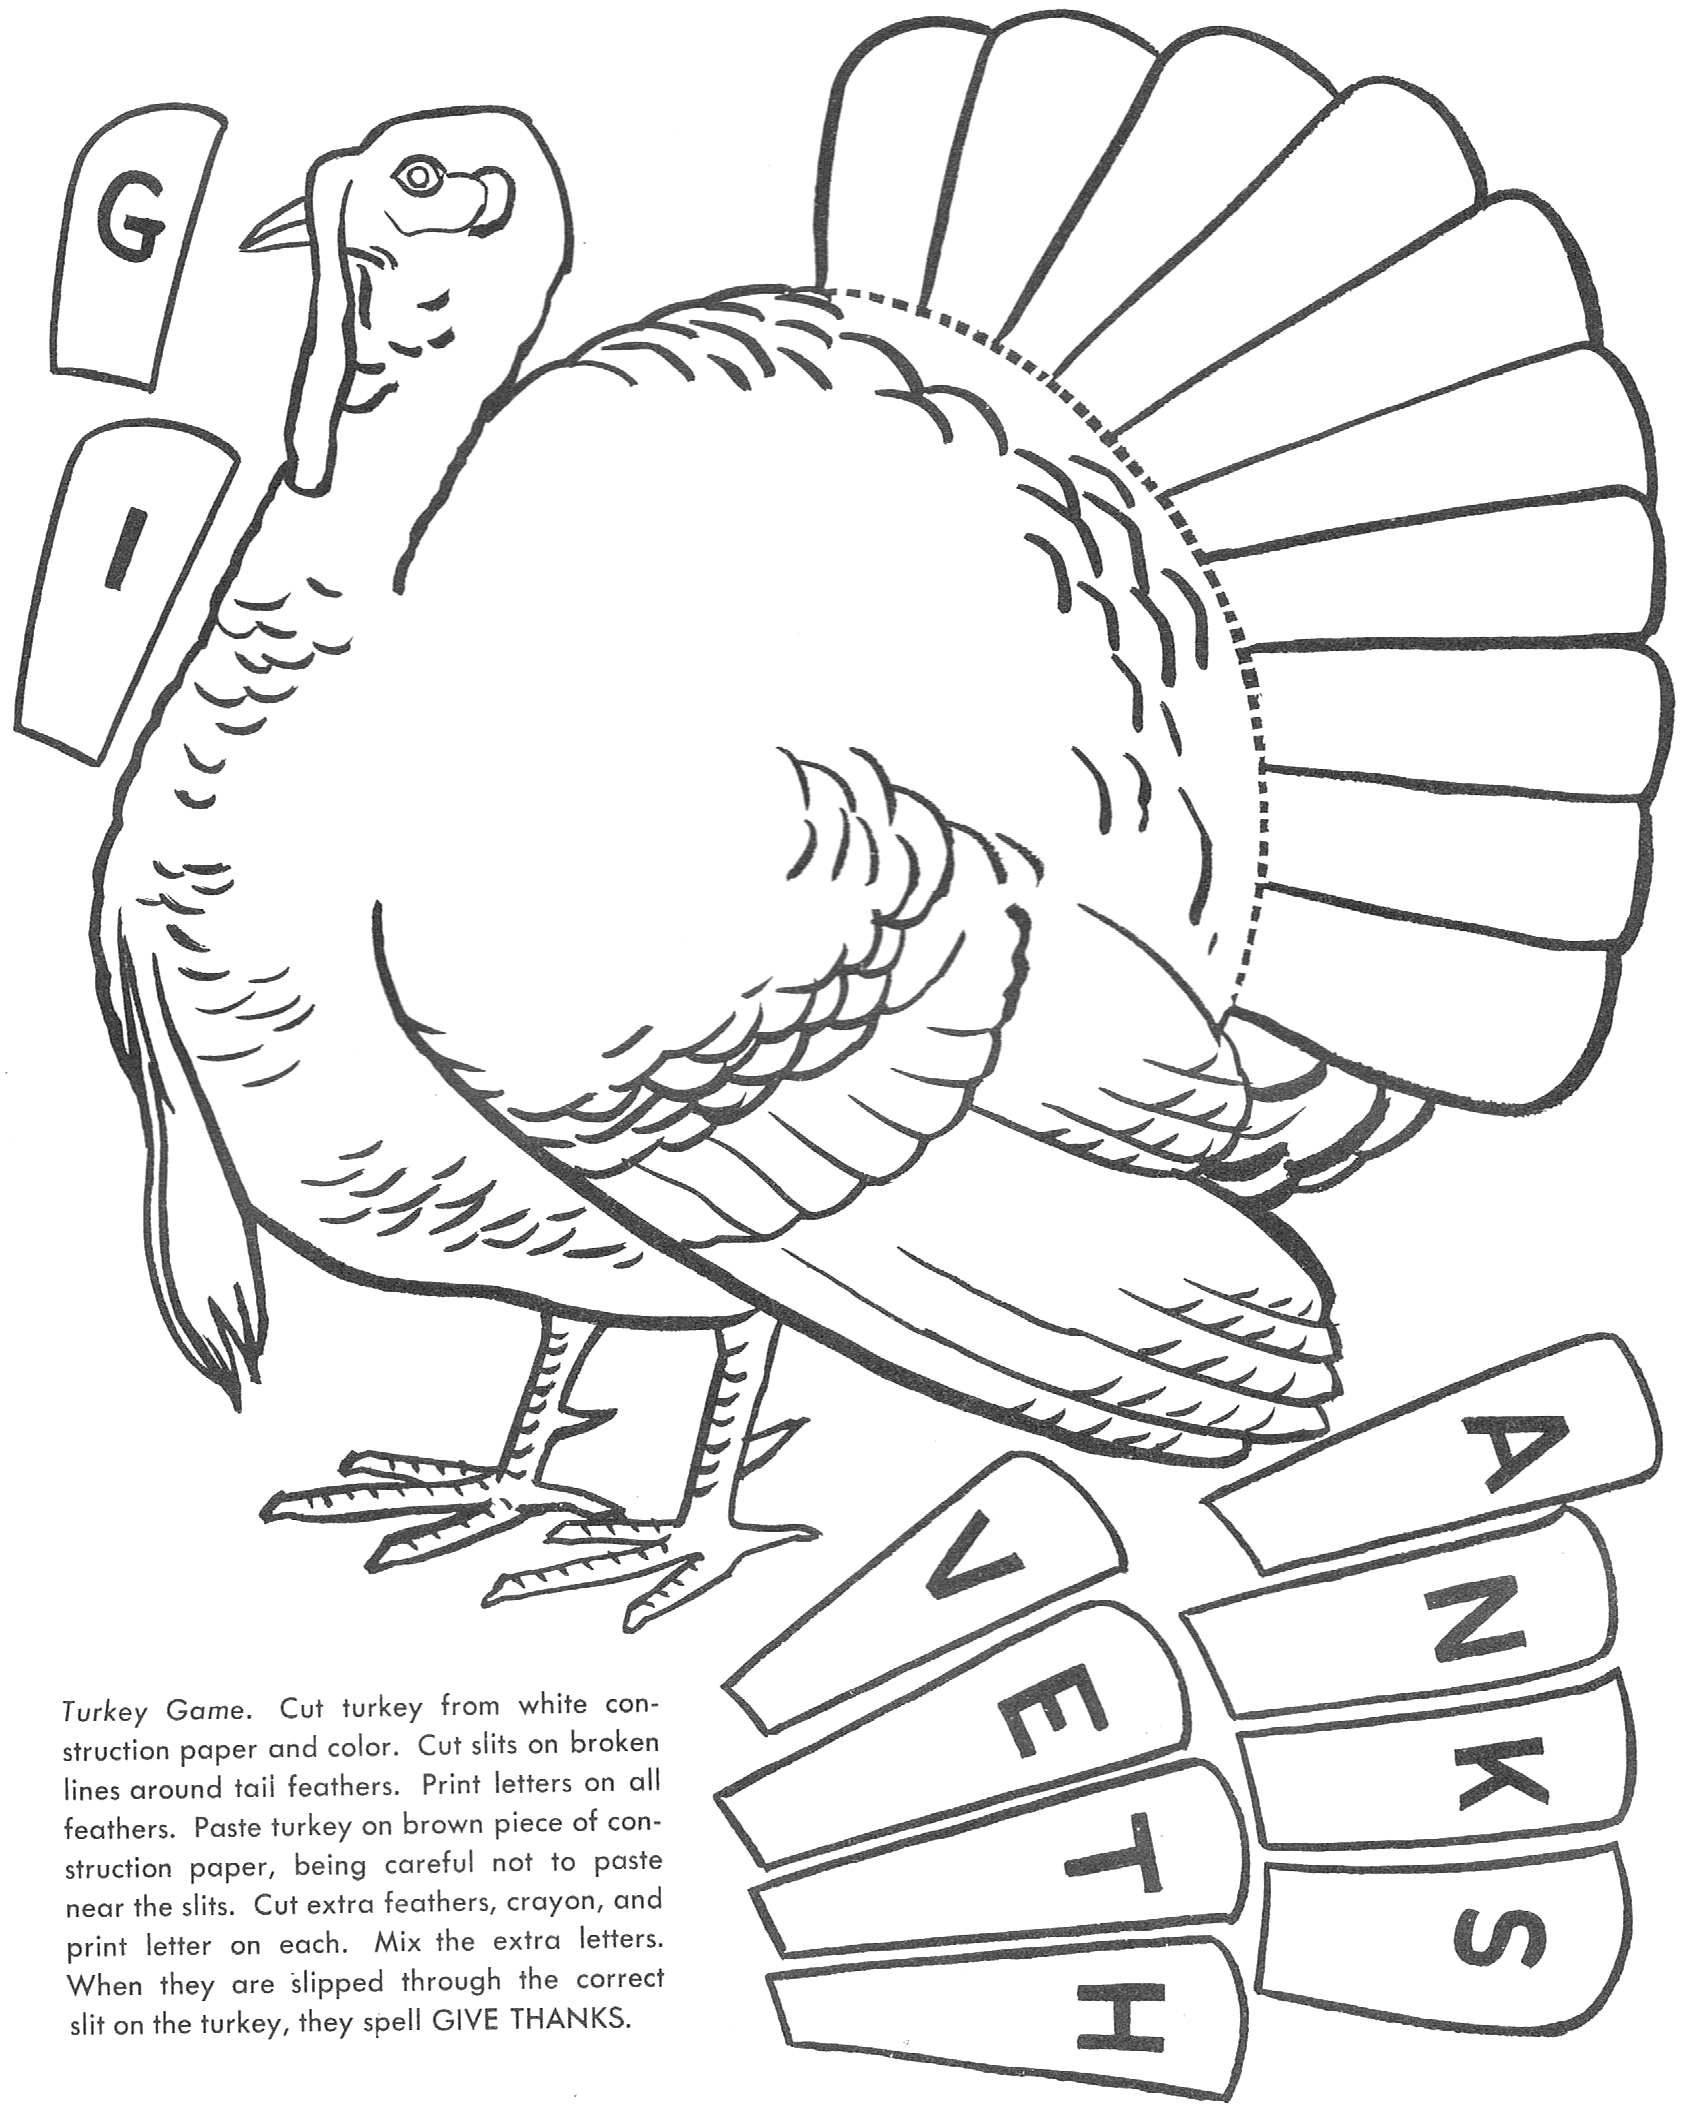 template printable how to play the turkey game turkey printable